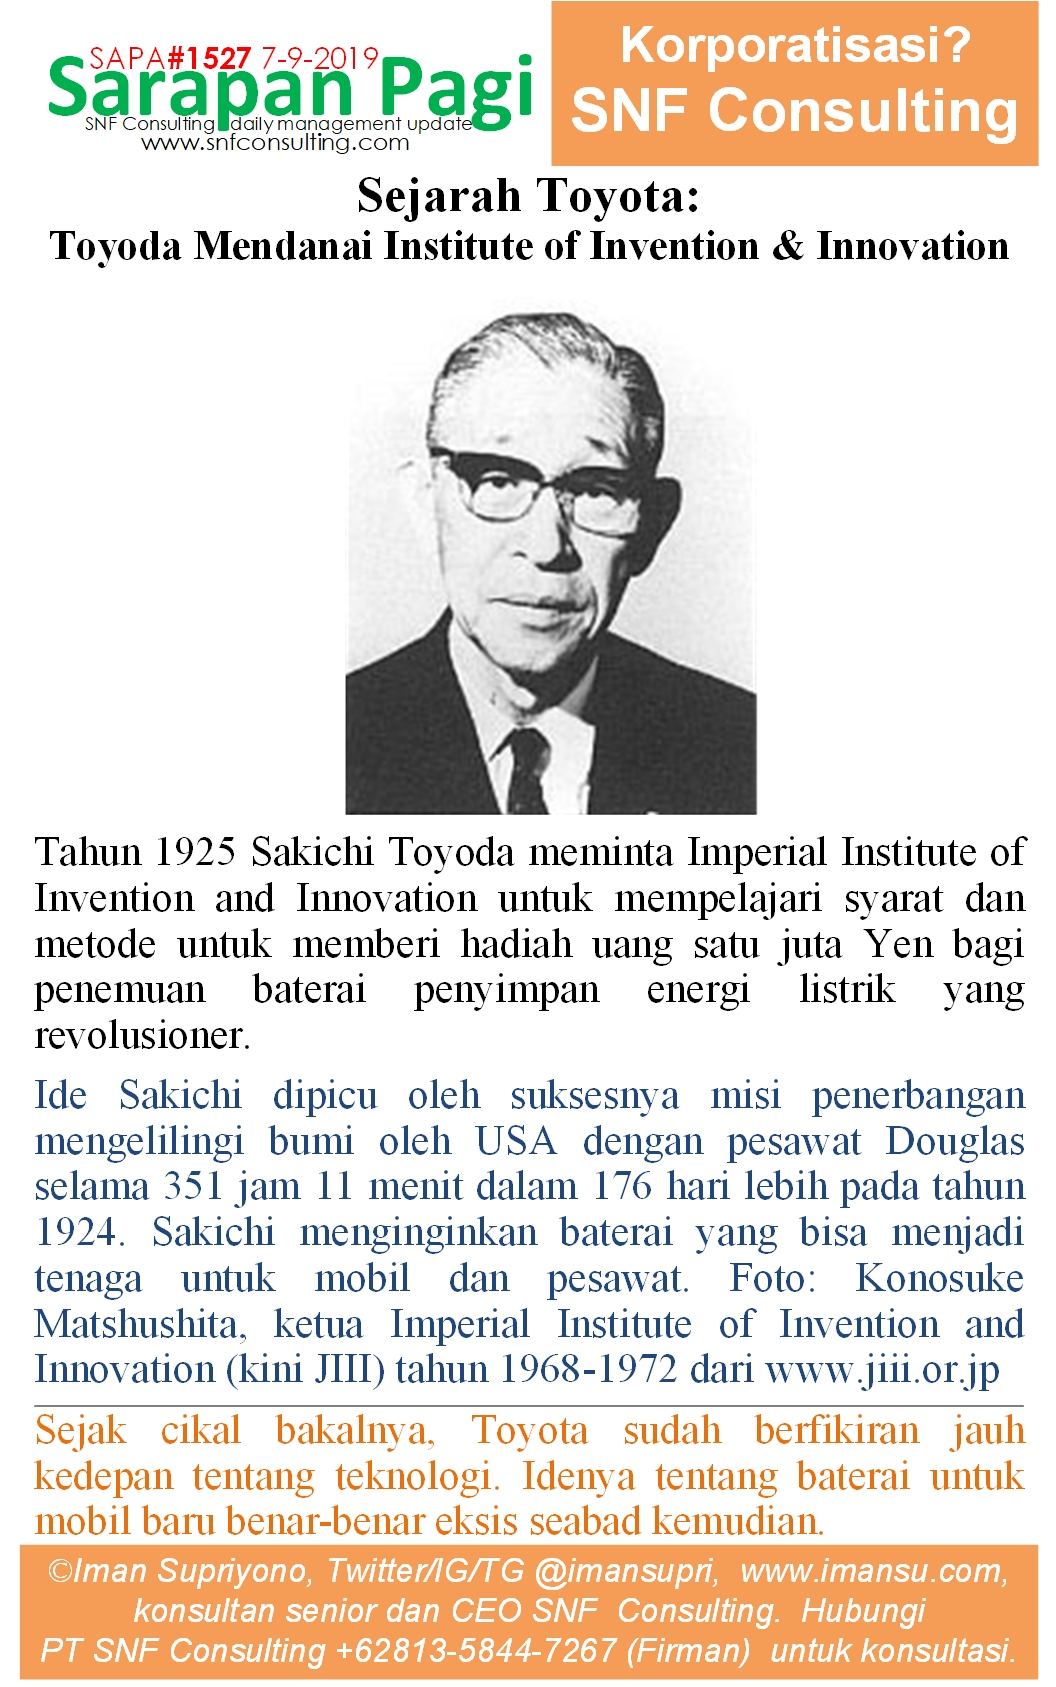 SAPA1527 Sejarah Toyota Ketertarikan Mendanai institute of invention.jpg